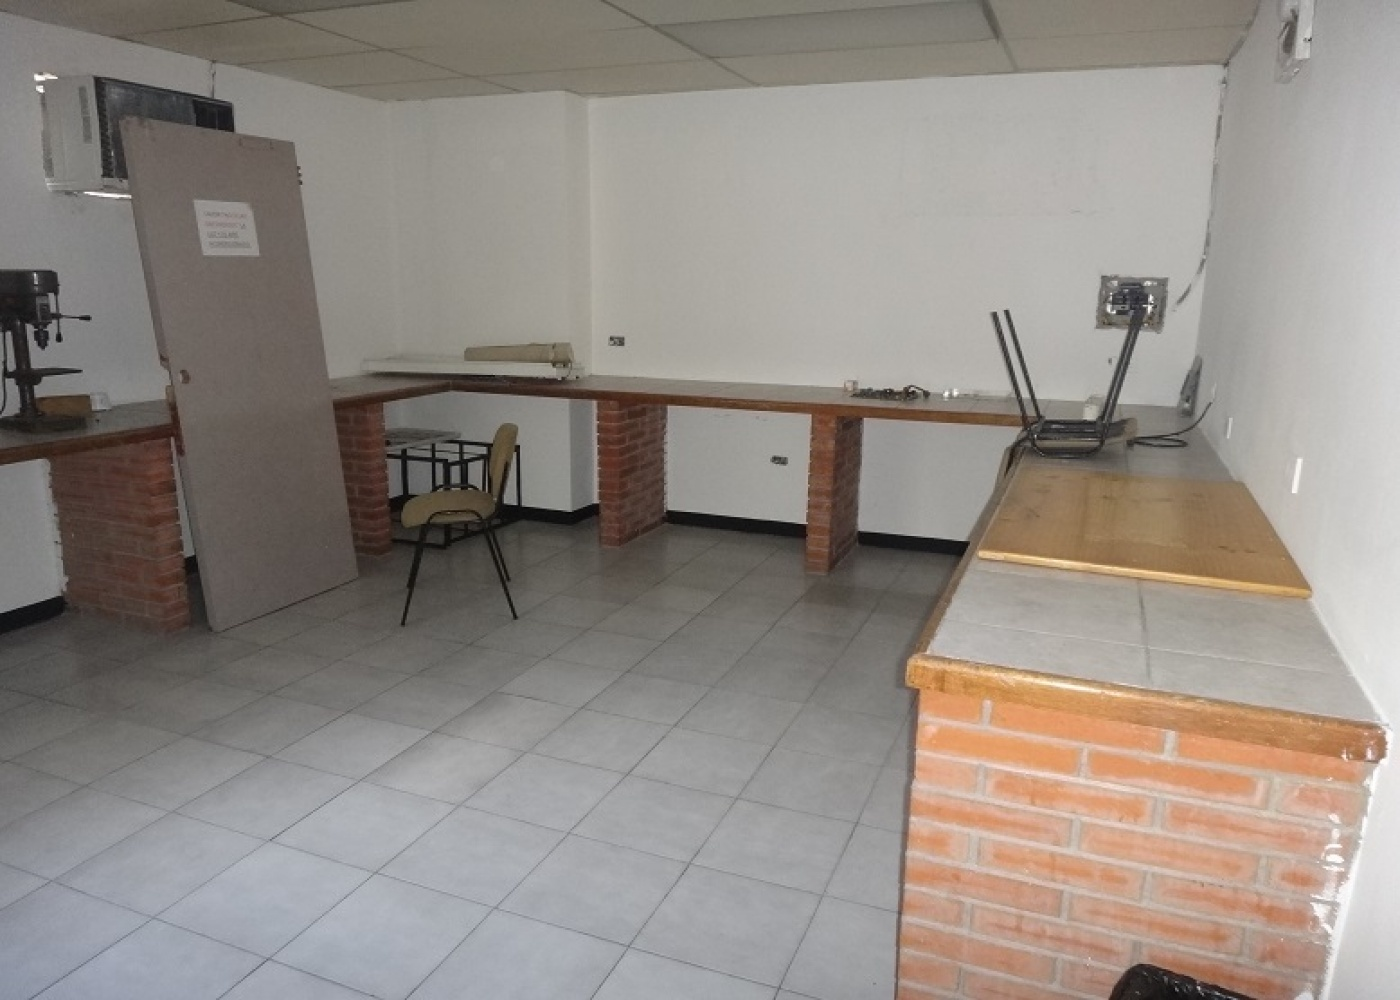 Parcela B Cuarta, Guatire, Miranda, 3 Bedrooms Bedrooms, 18 Rooms Rooms,6 BathroomsBathrooms,Galpon/Deposito,Venta,Cuarta,1020